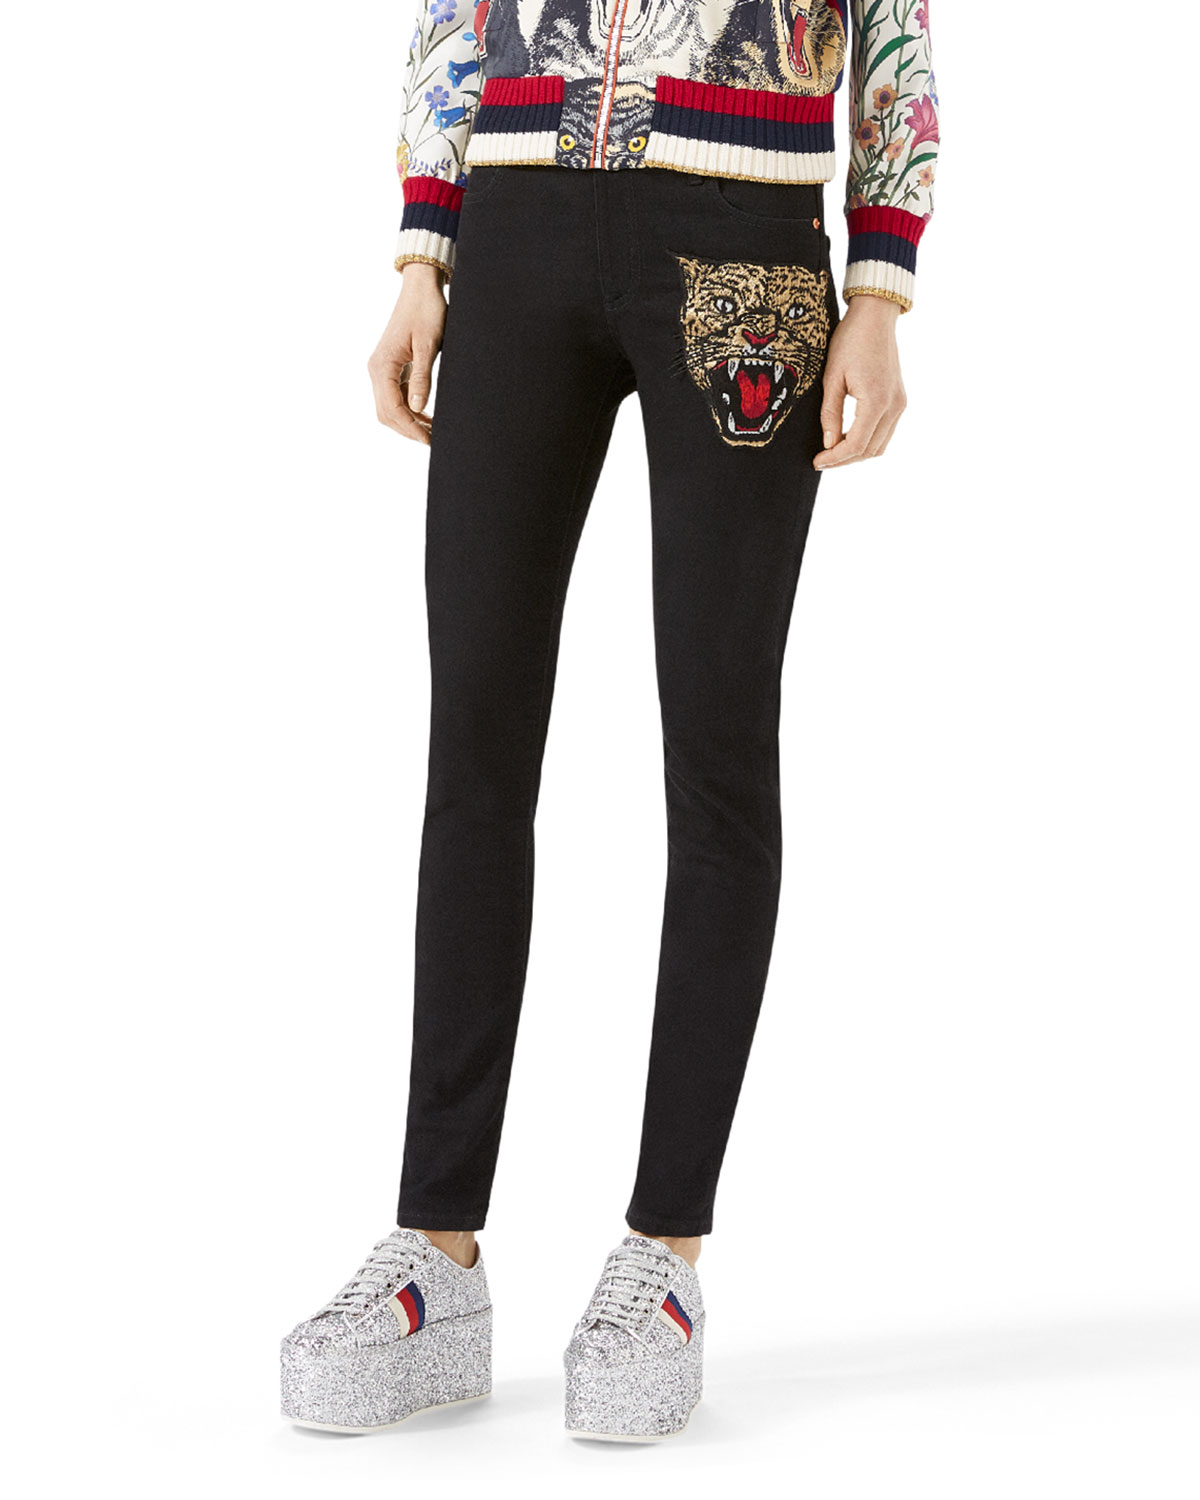 ad5359ee1c2 Gucci Angry Cat Embroidered Denim Pants